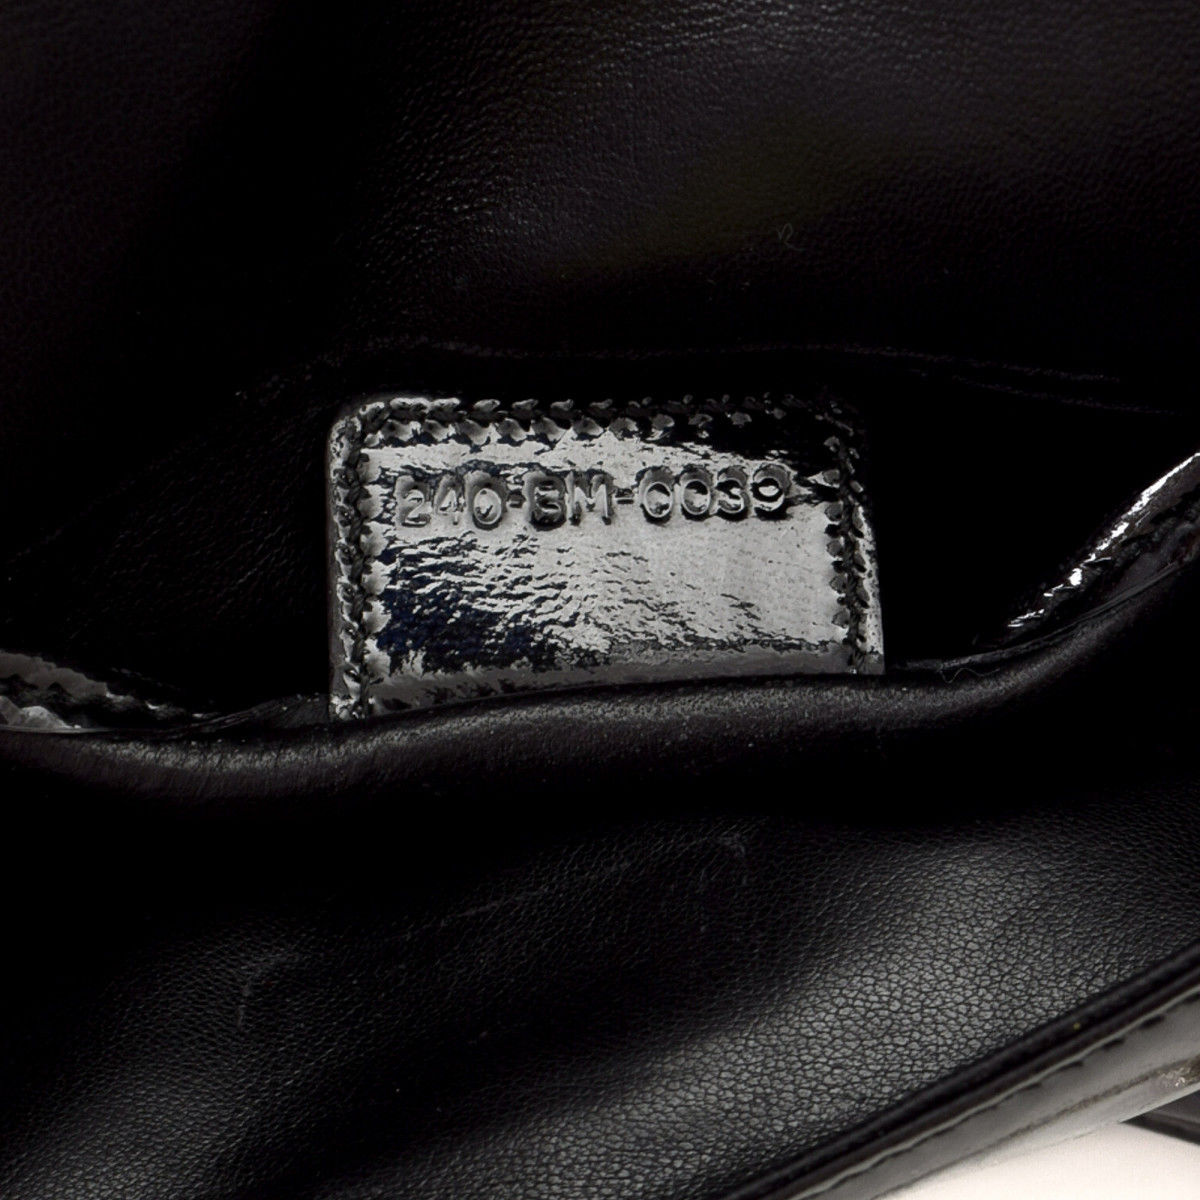 Dior Lady Dior Cannage Wallet on Chain Cannage Patent leather ... e399139cc723f